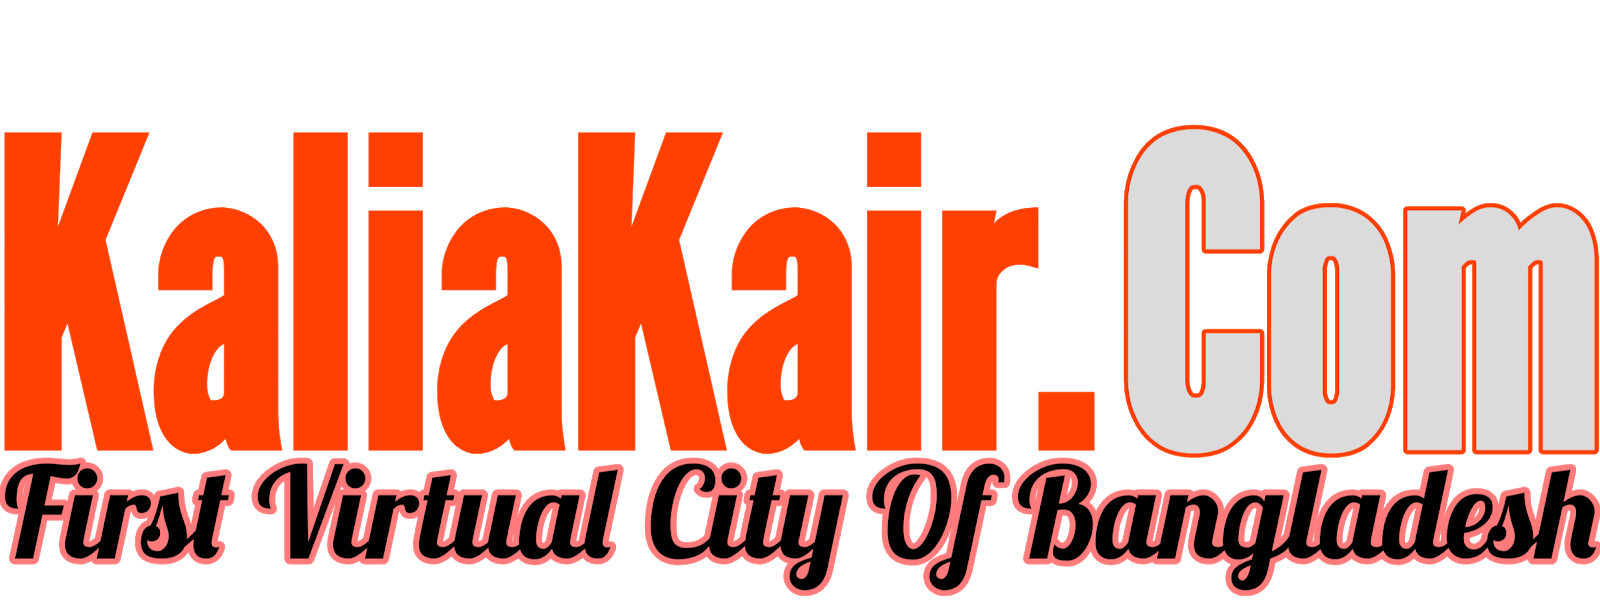 KaliaKair.Com - Bangladesh First Virtual City